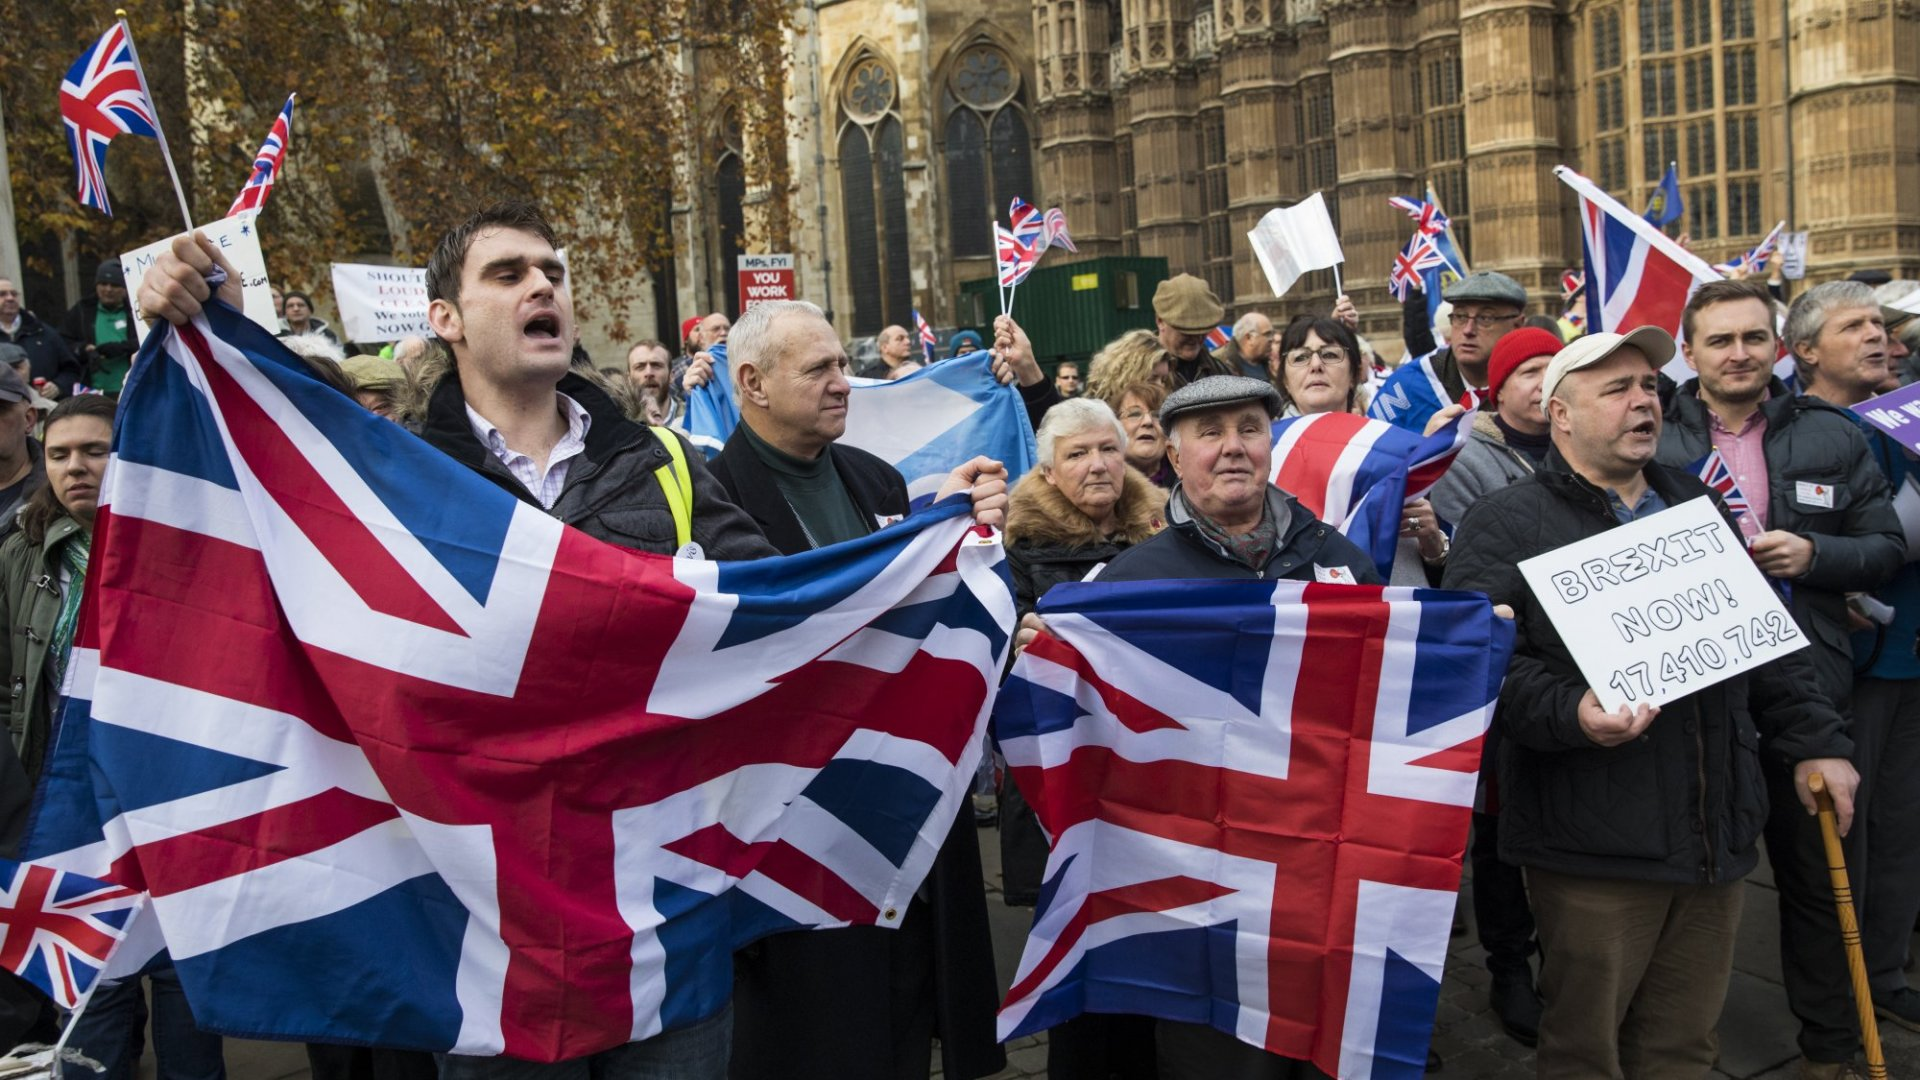 A pro-Brexit rally.